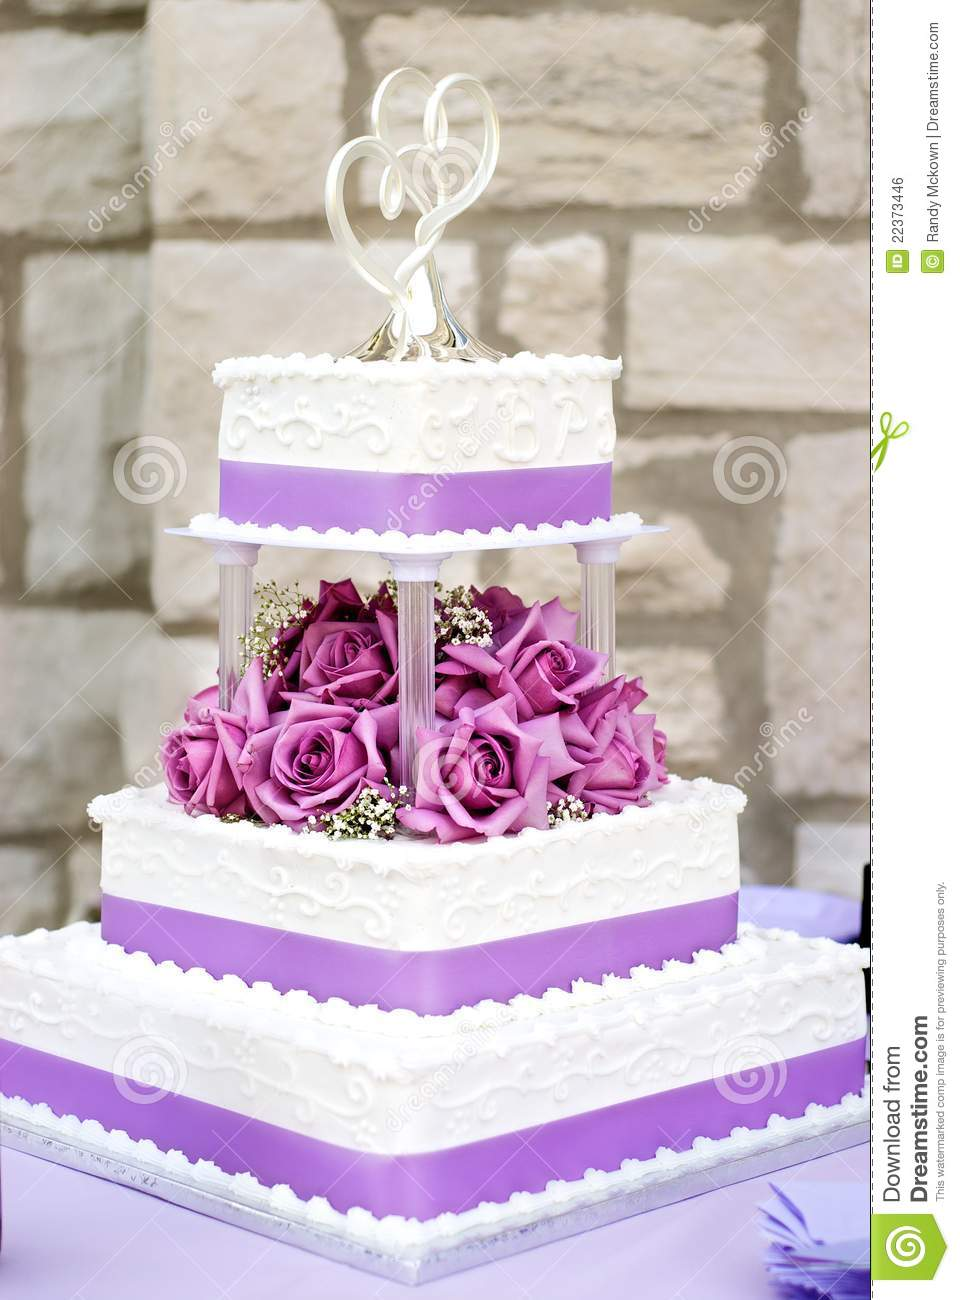 White wedding cake stock photo image of white flowers 22373446 classic 3 tier white wedding cake with purple flowers and ribbon mightylinksfo